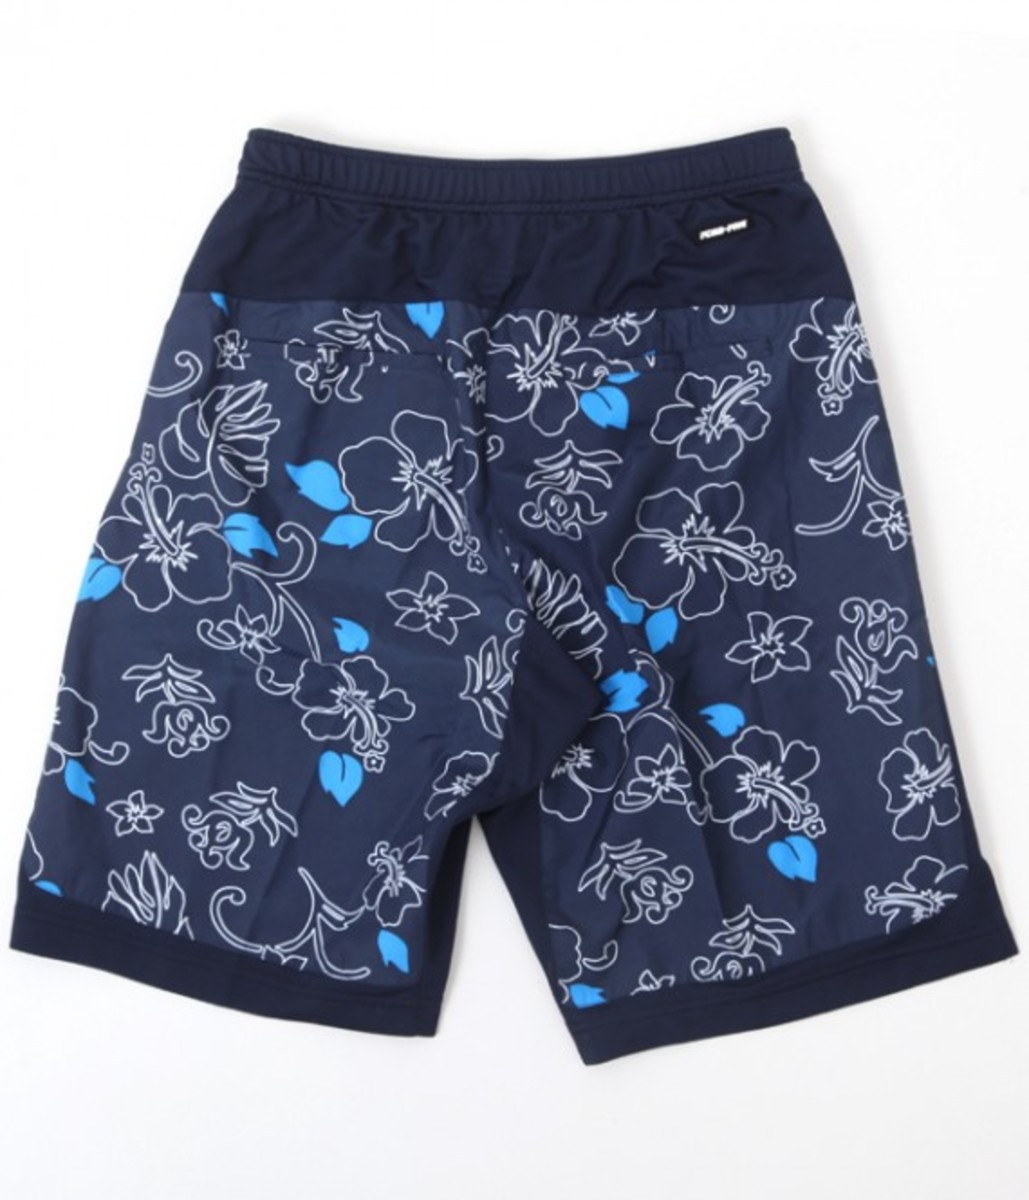 fcrb-five-game-shorts-navy-02